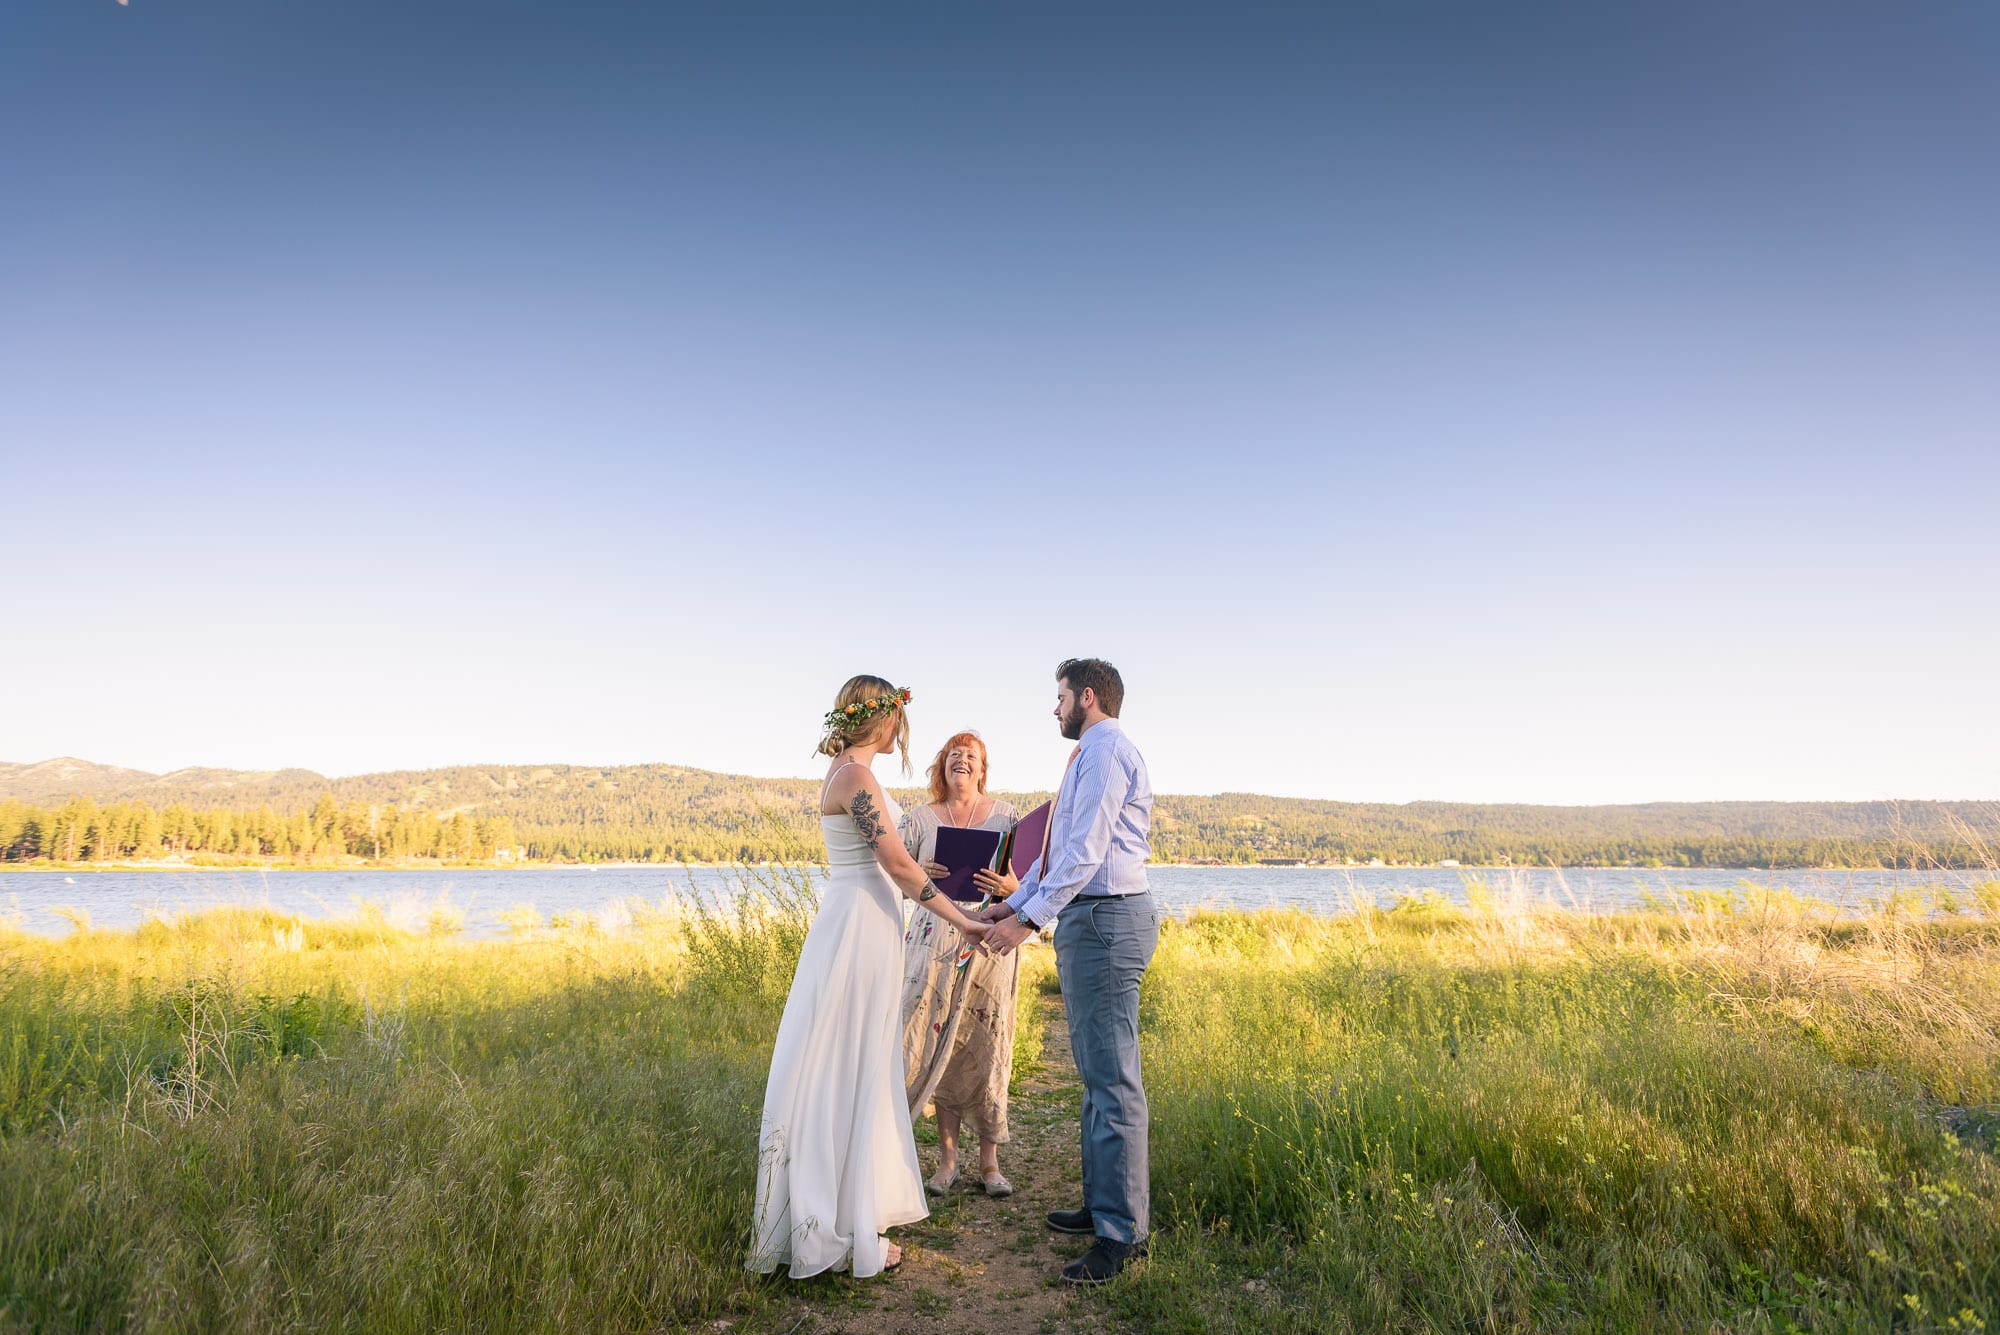 019_Alan_and_Heidi_Kensey_Josh_Big_Bear_Elopement